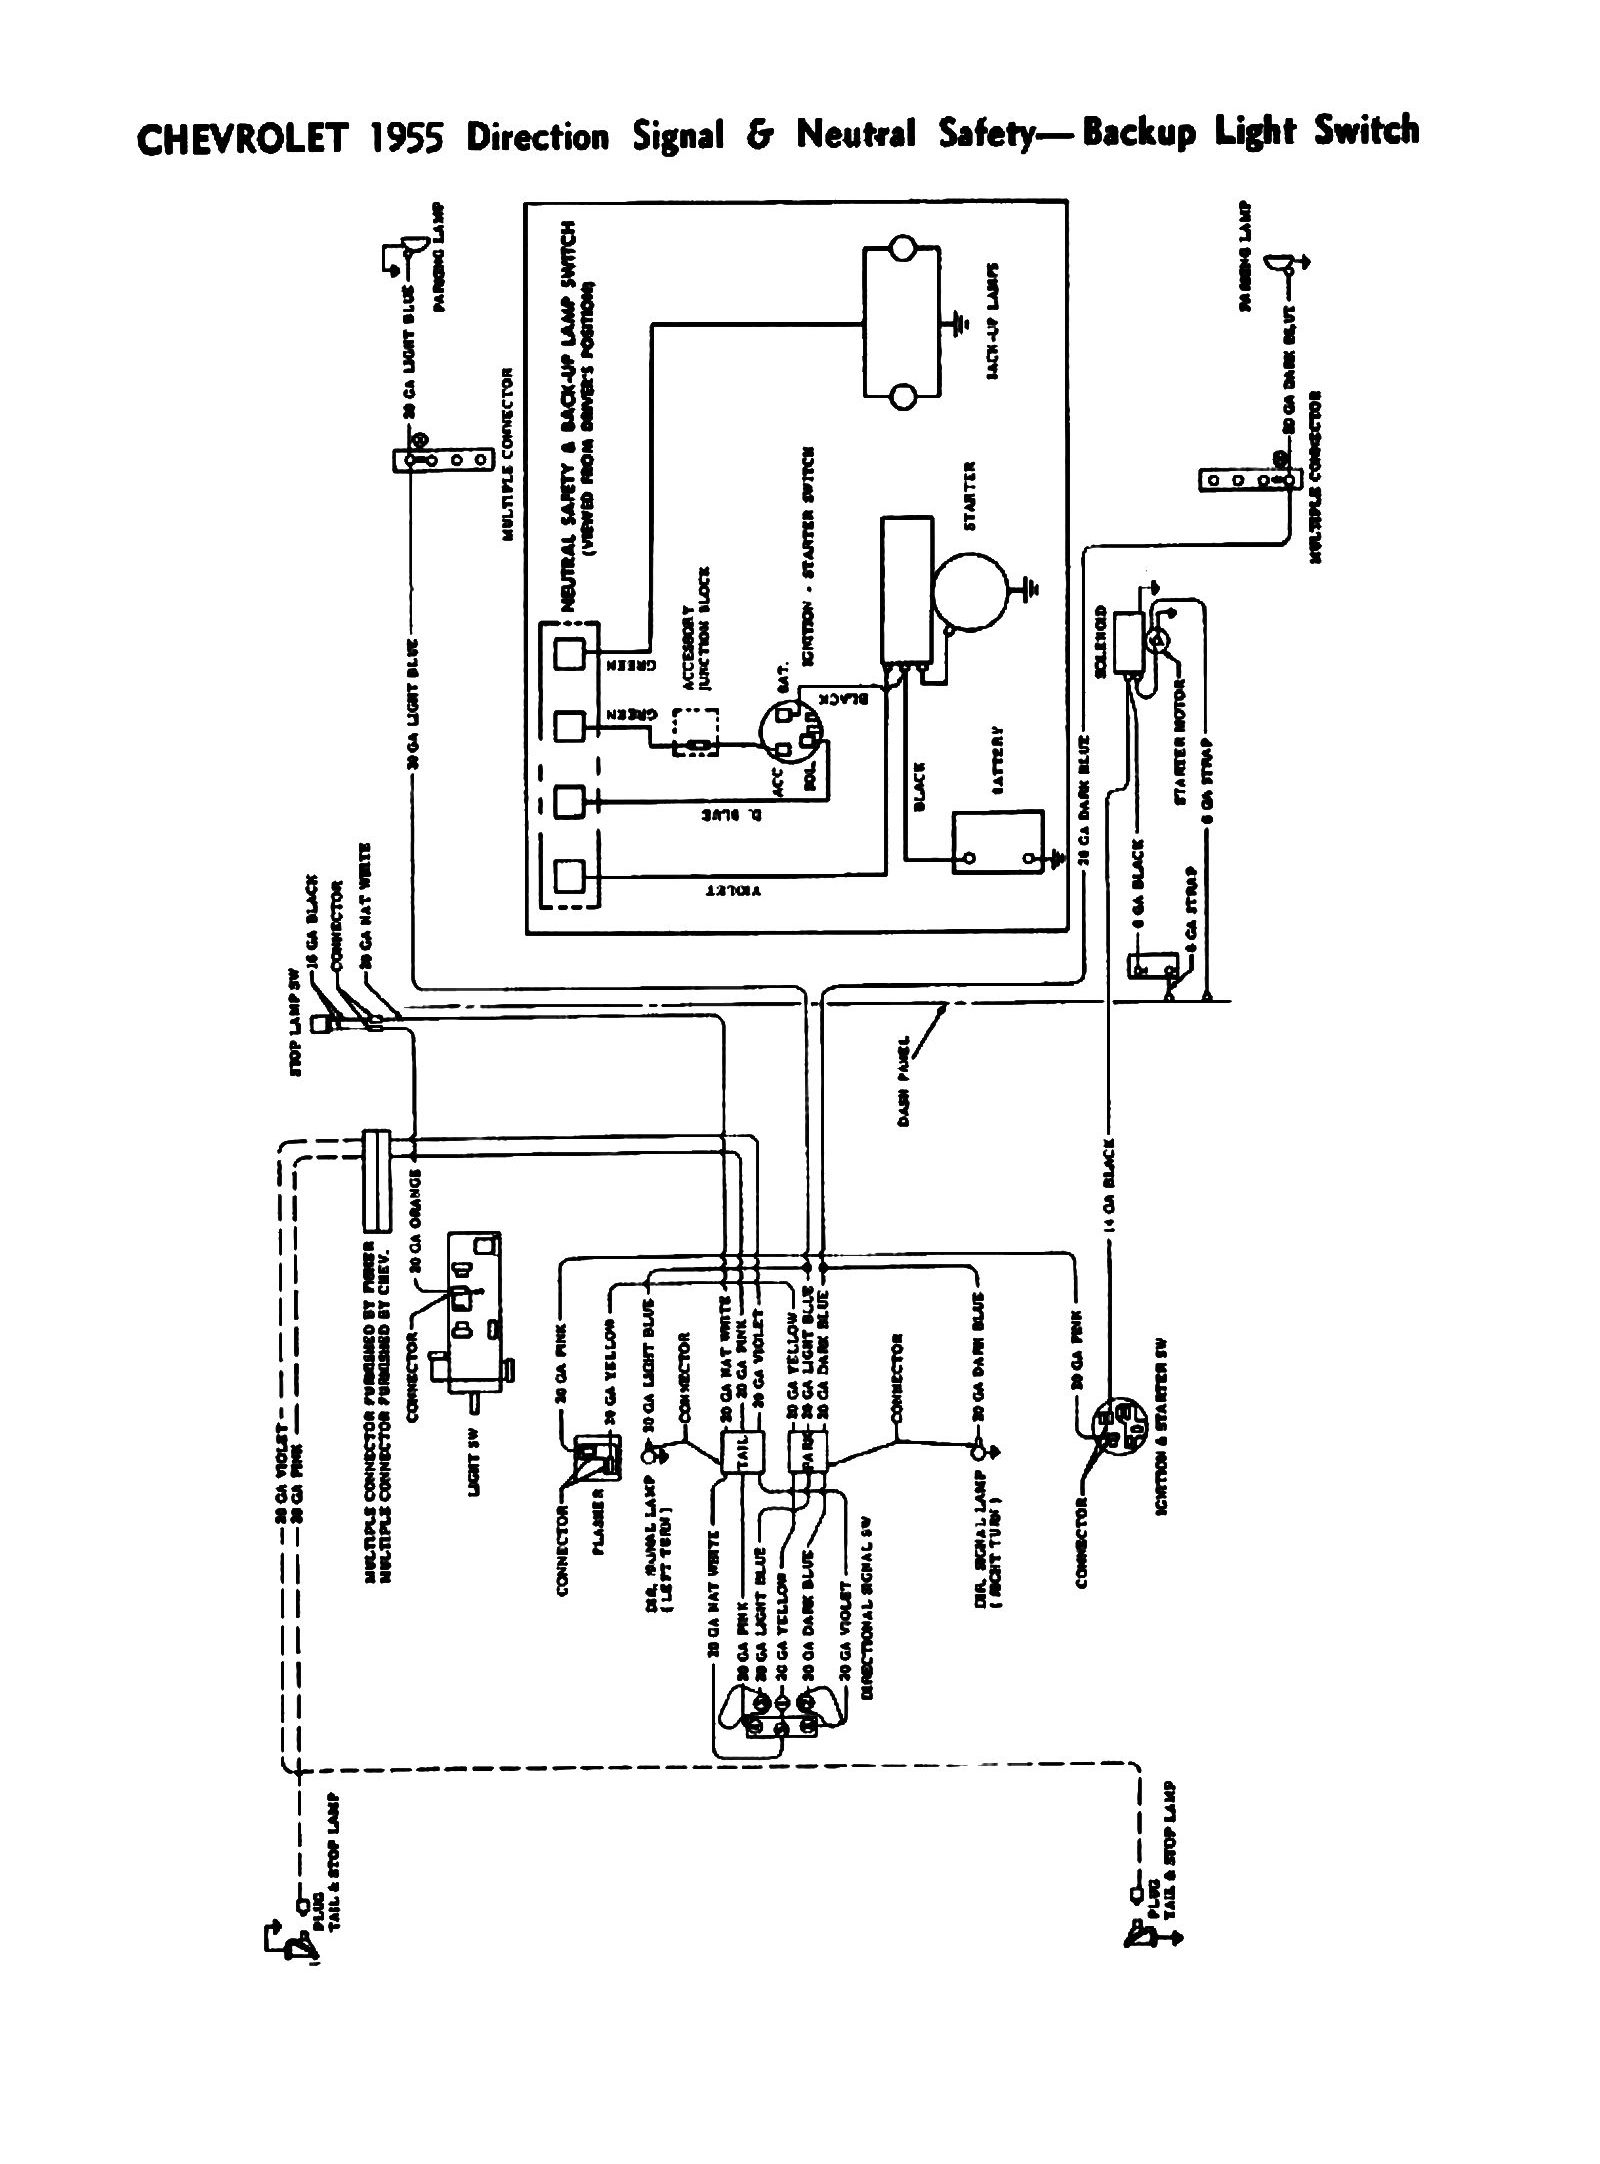 hight resolution of 56 ford voltage regulator wiring diagram wiring library 1955 ford voltage regulator wiring